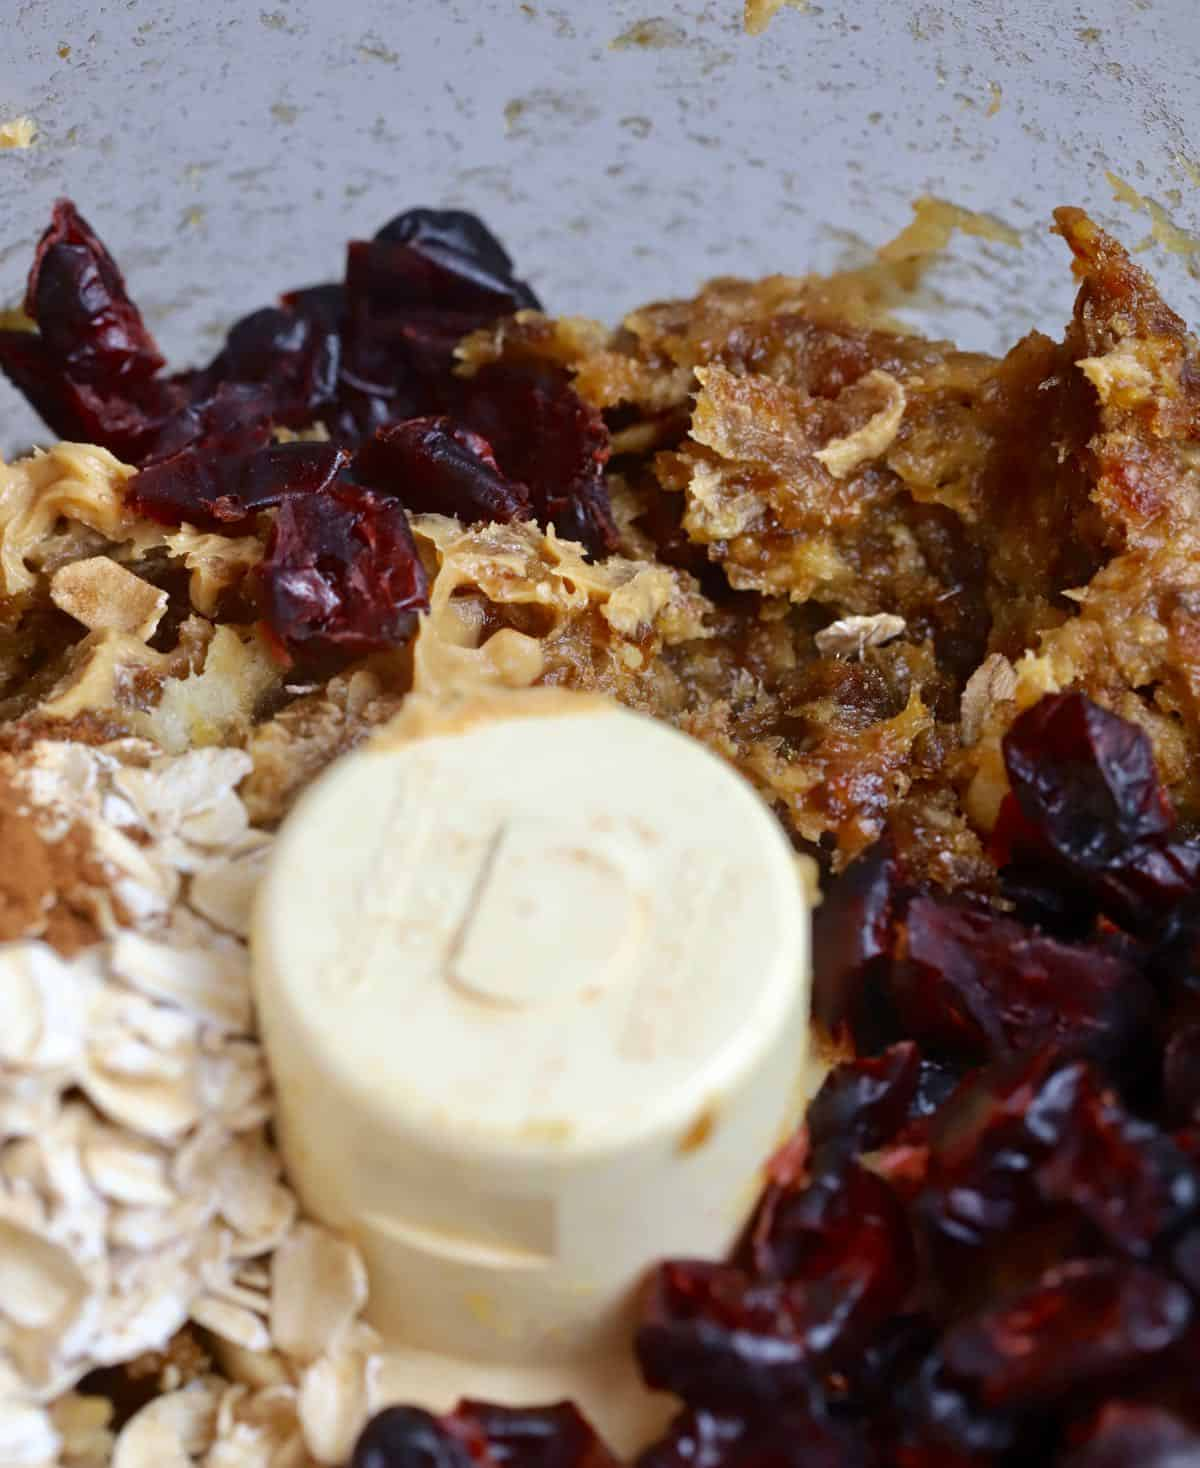 Chopped dates, oatmeal, dried cranberries and peanut butter in the bowl of a food processor.